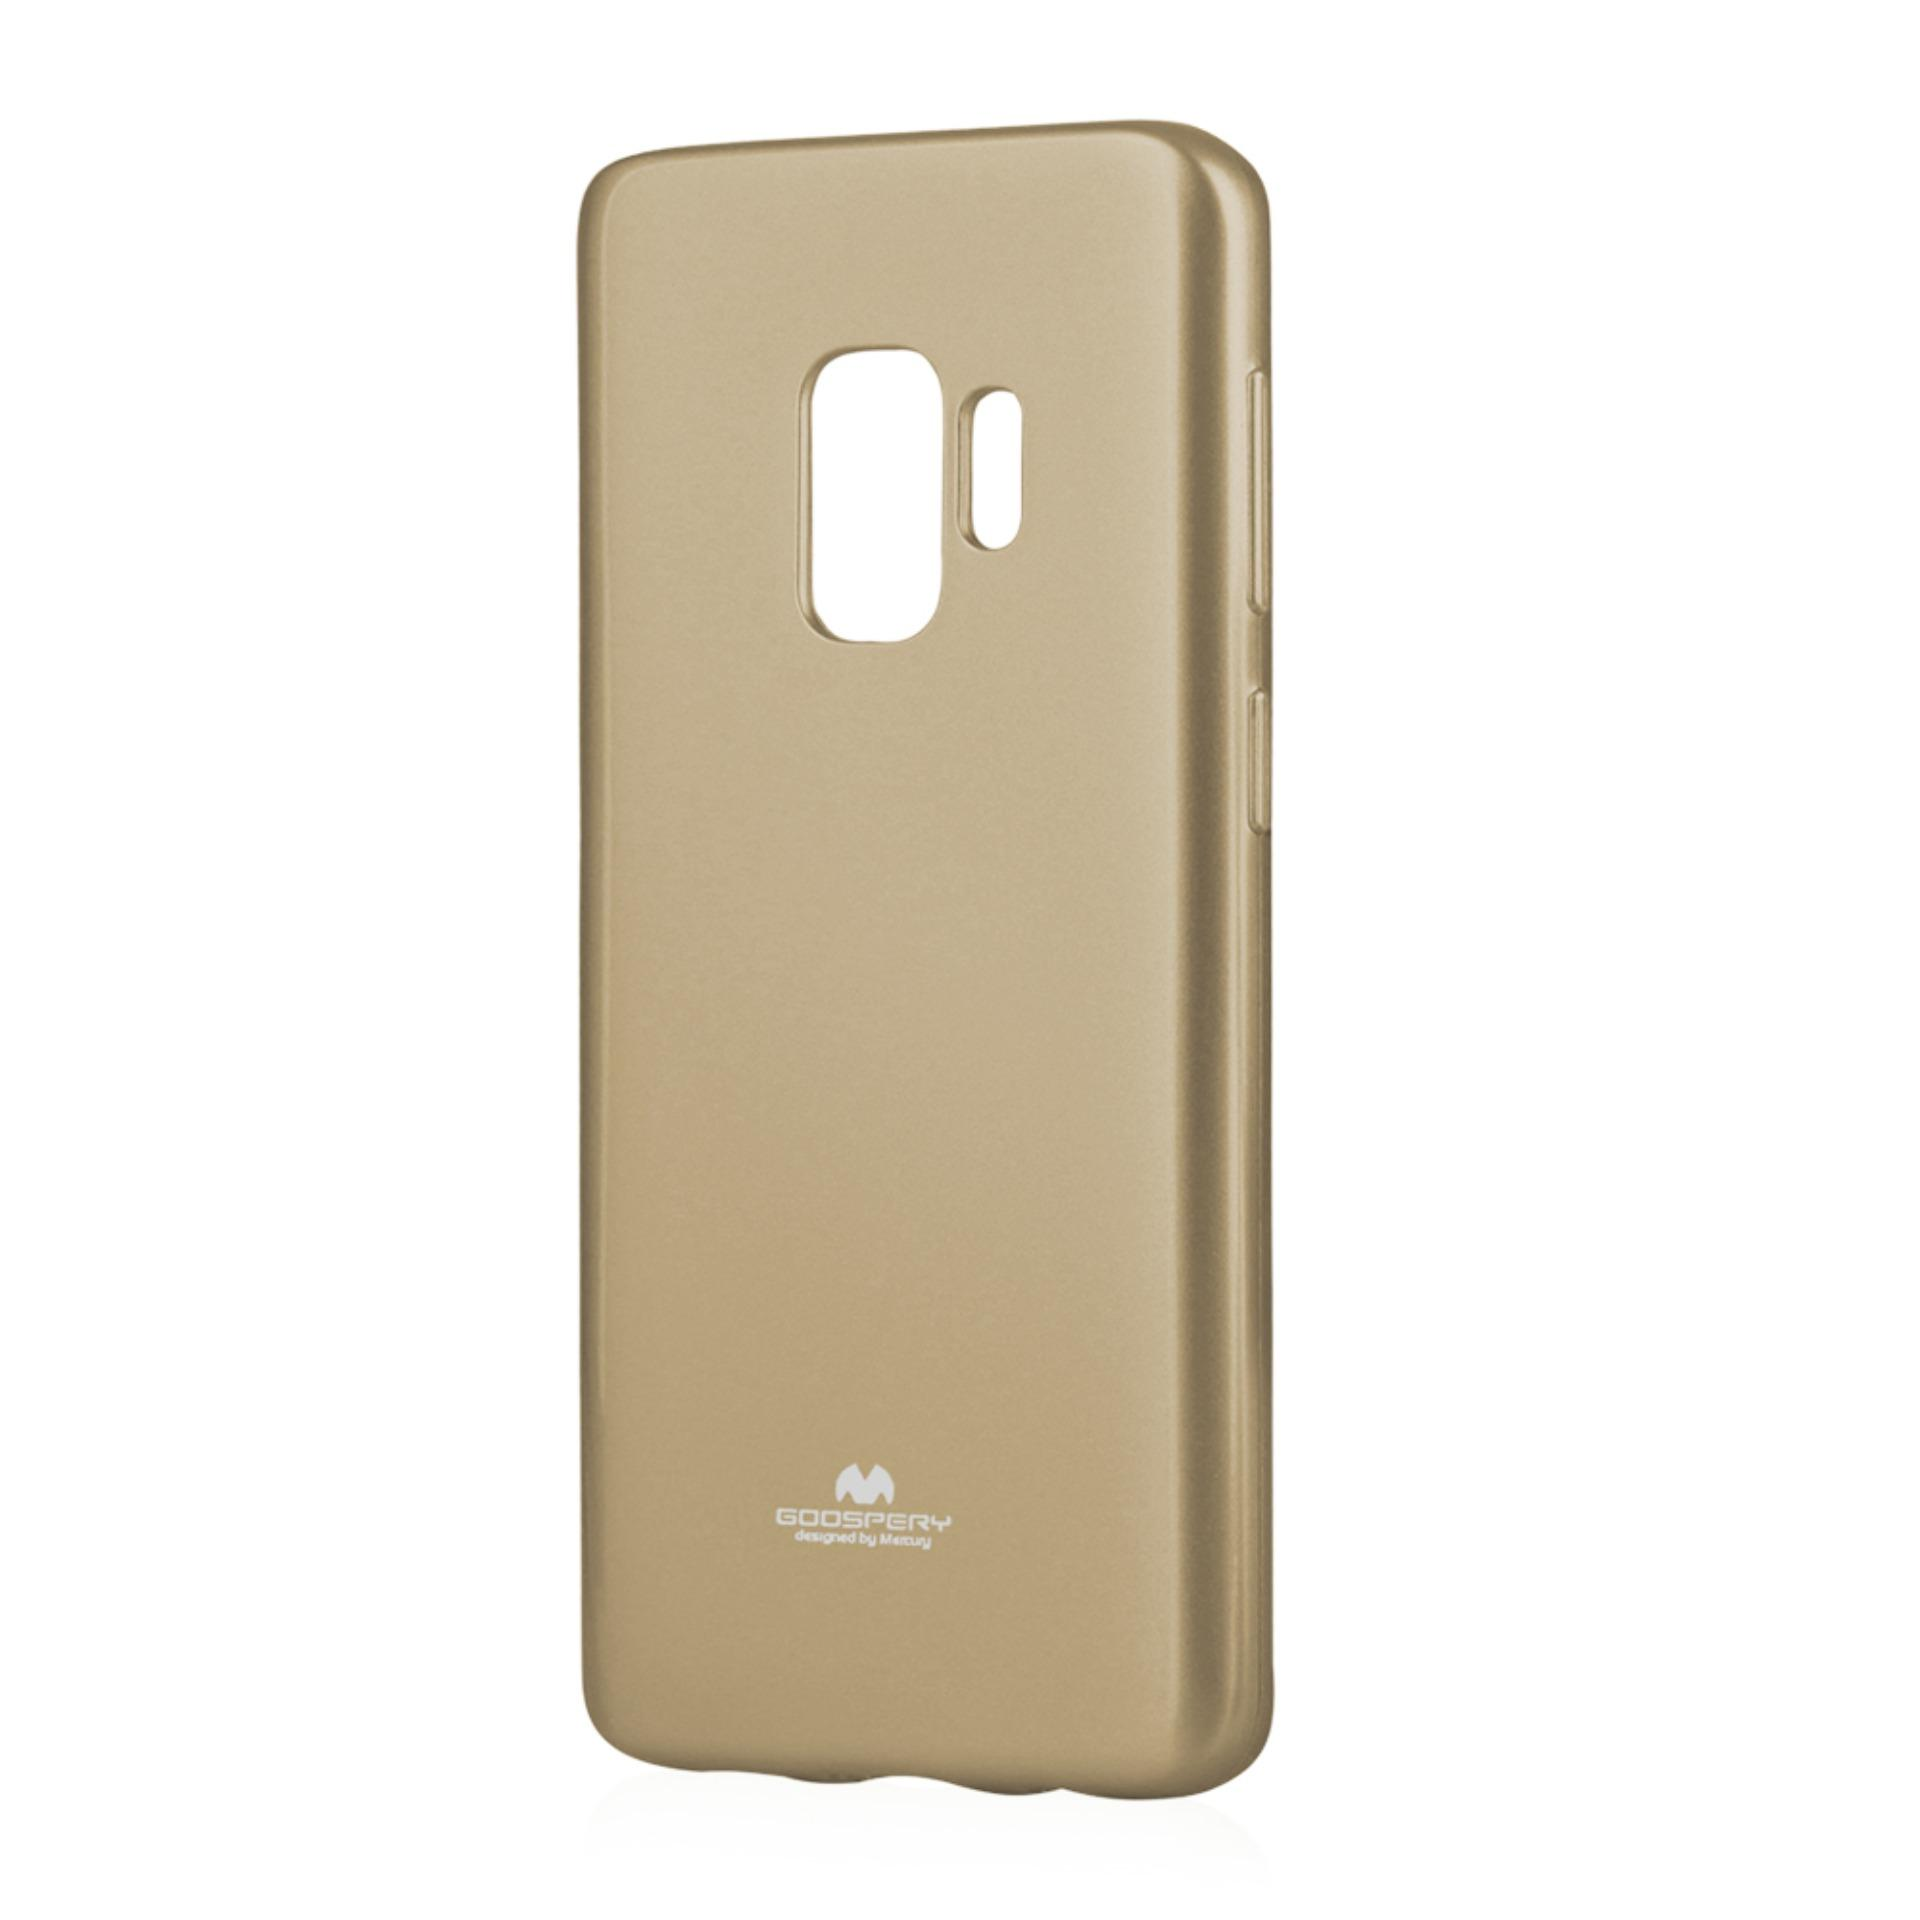 Digibabe Philippines Price List Phone Cases Screen Goospery Samsung Galaxy S8 Plus New Bumper X Case Gold E514 Heather Gal S9